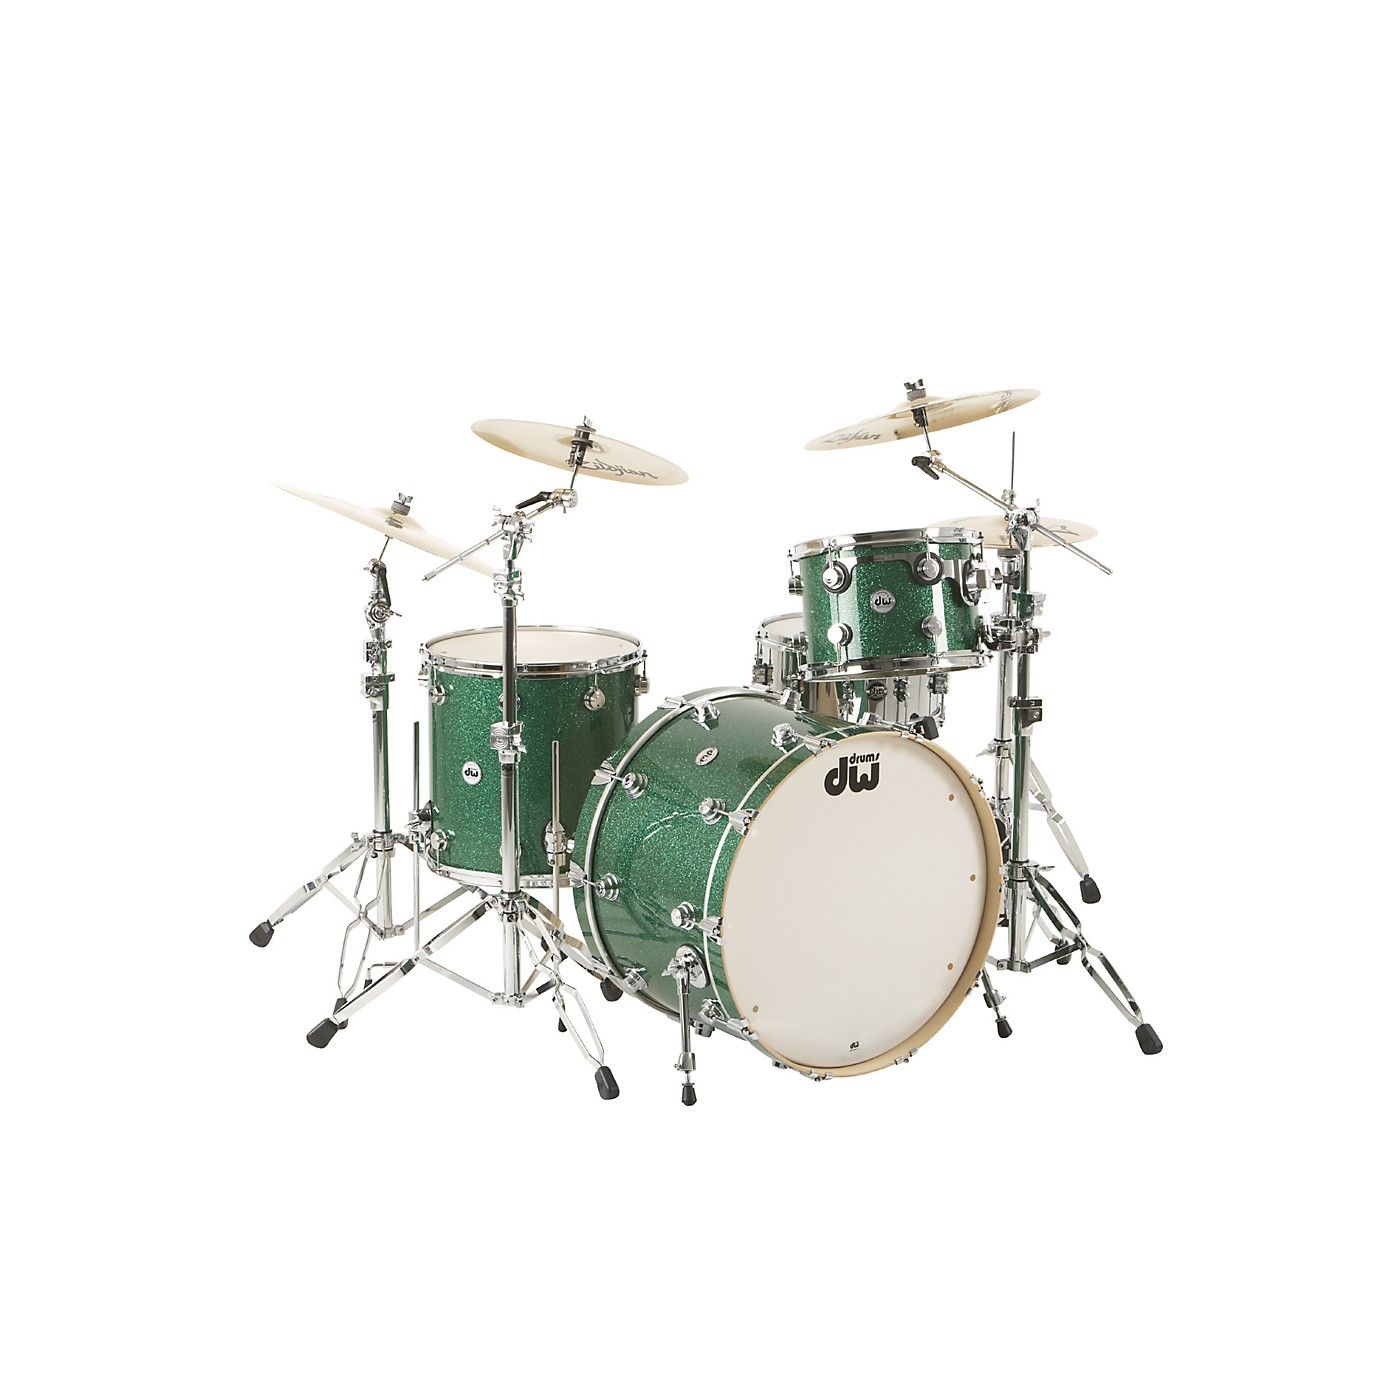 DW Collector's Series 3-Piece Shell Pack with 24